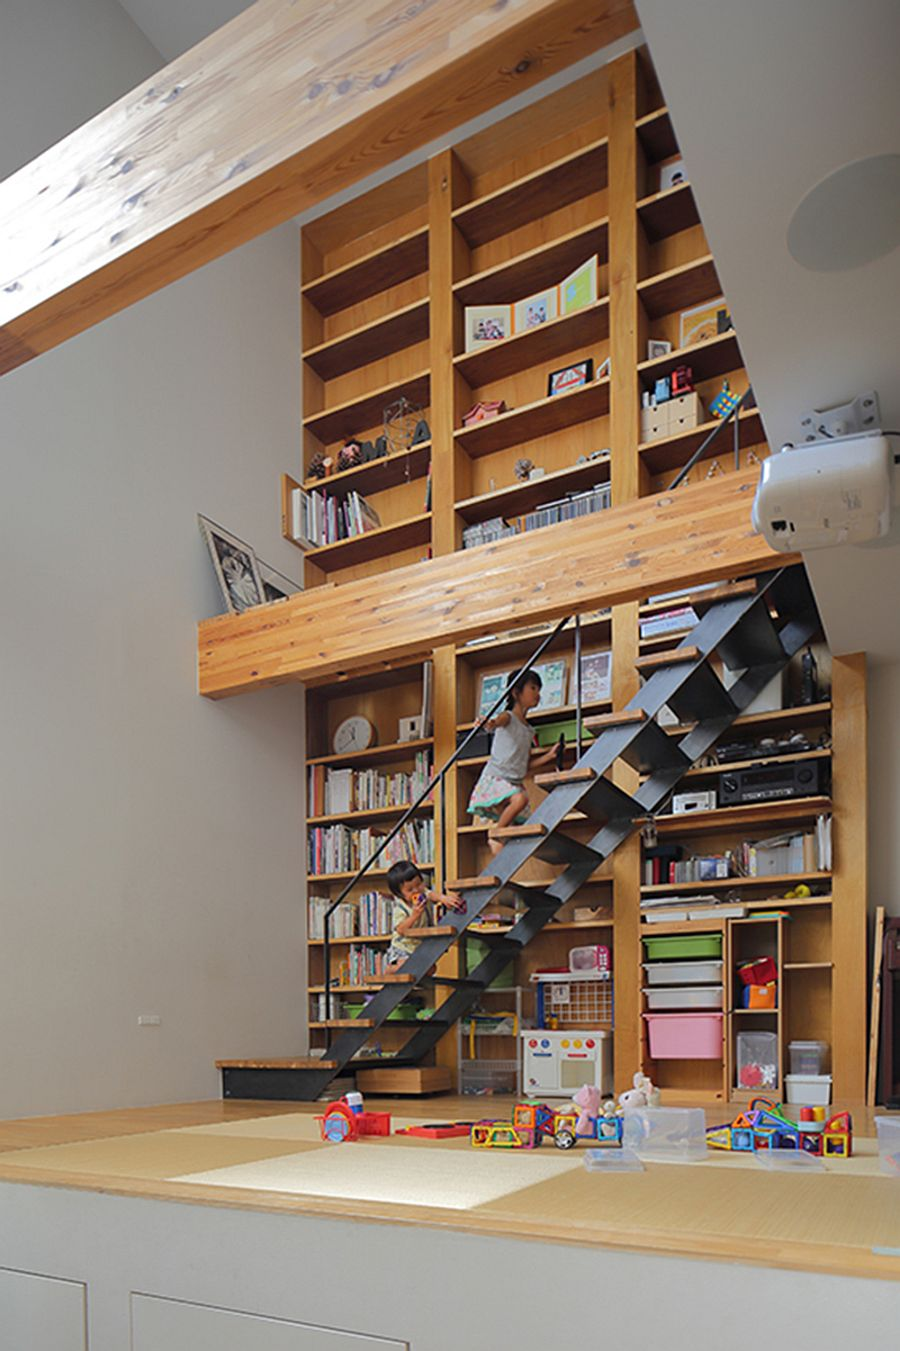 Slim staircase in front of the bookshelf connects the various levels